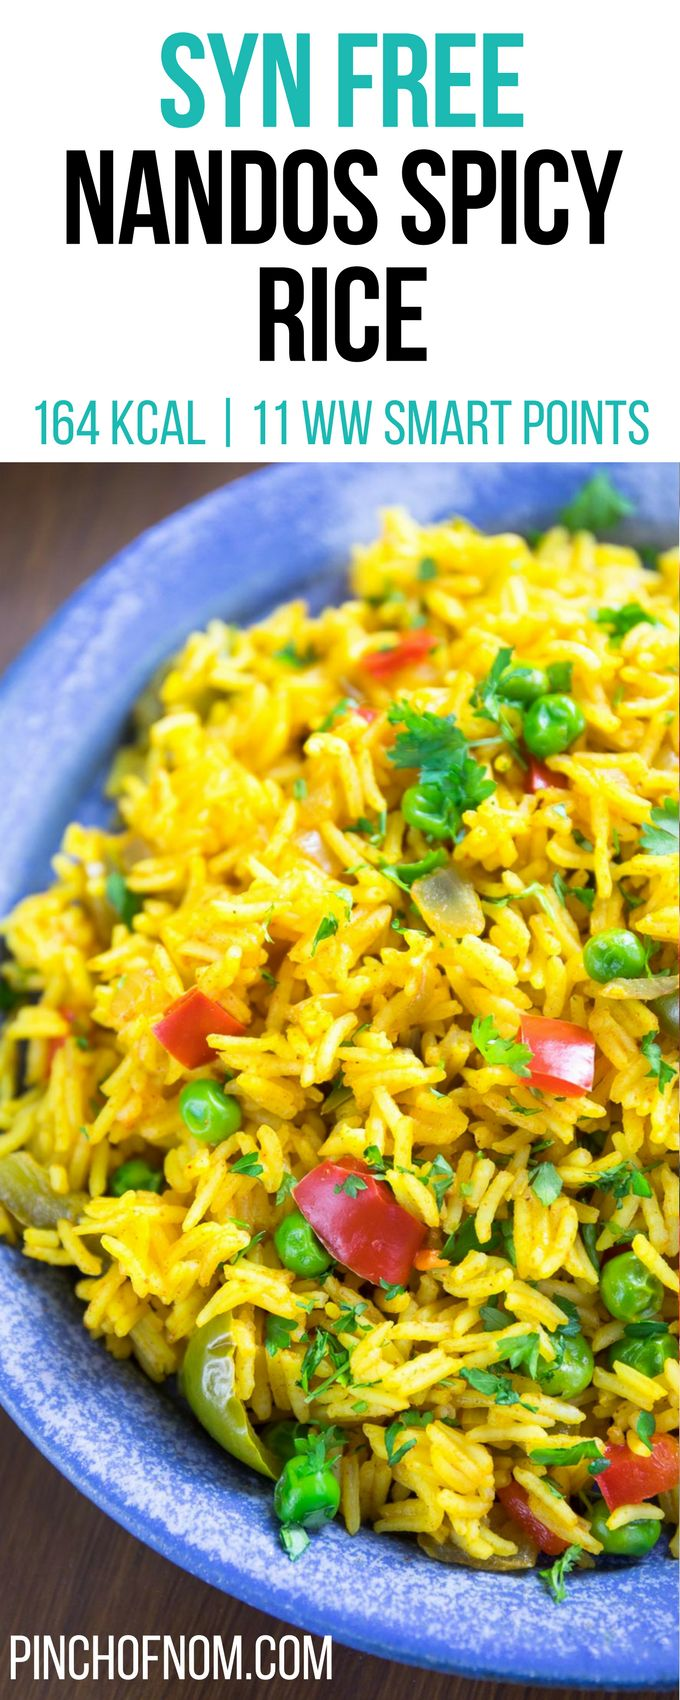 Syn Free Nandos Spicy Rice | Pinch Of Nom Slimming World Recipes     164 kcal | Syn Free | 11 Weight Watchers Smart Points